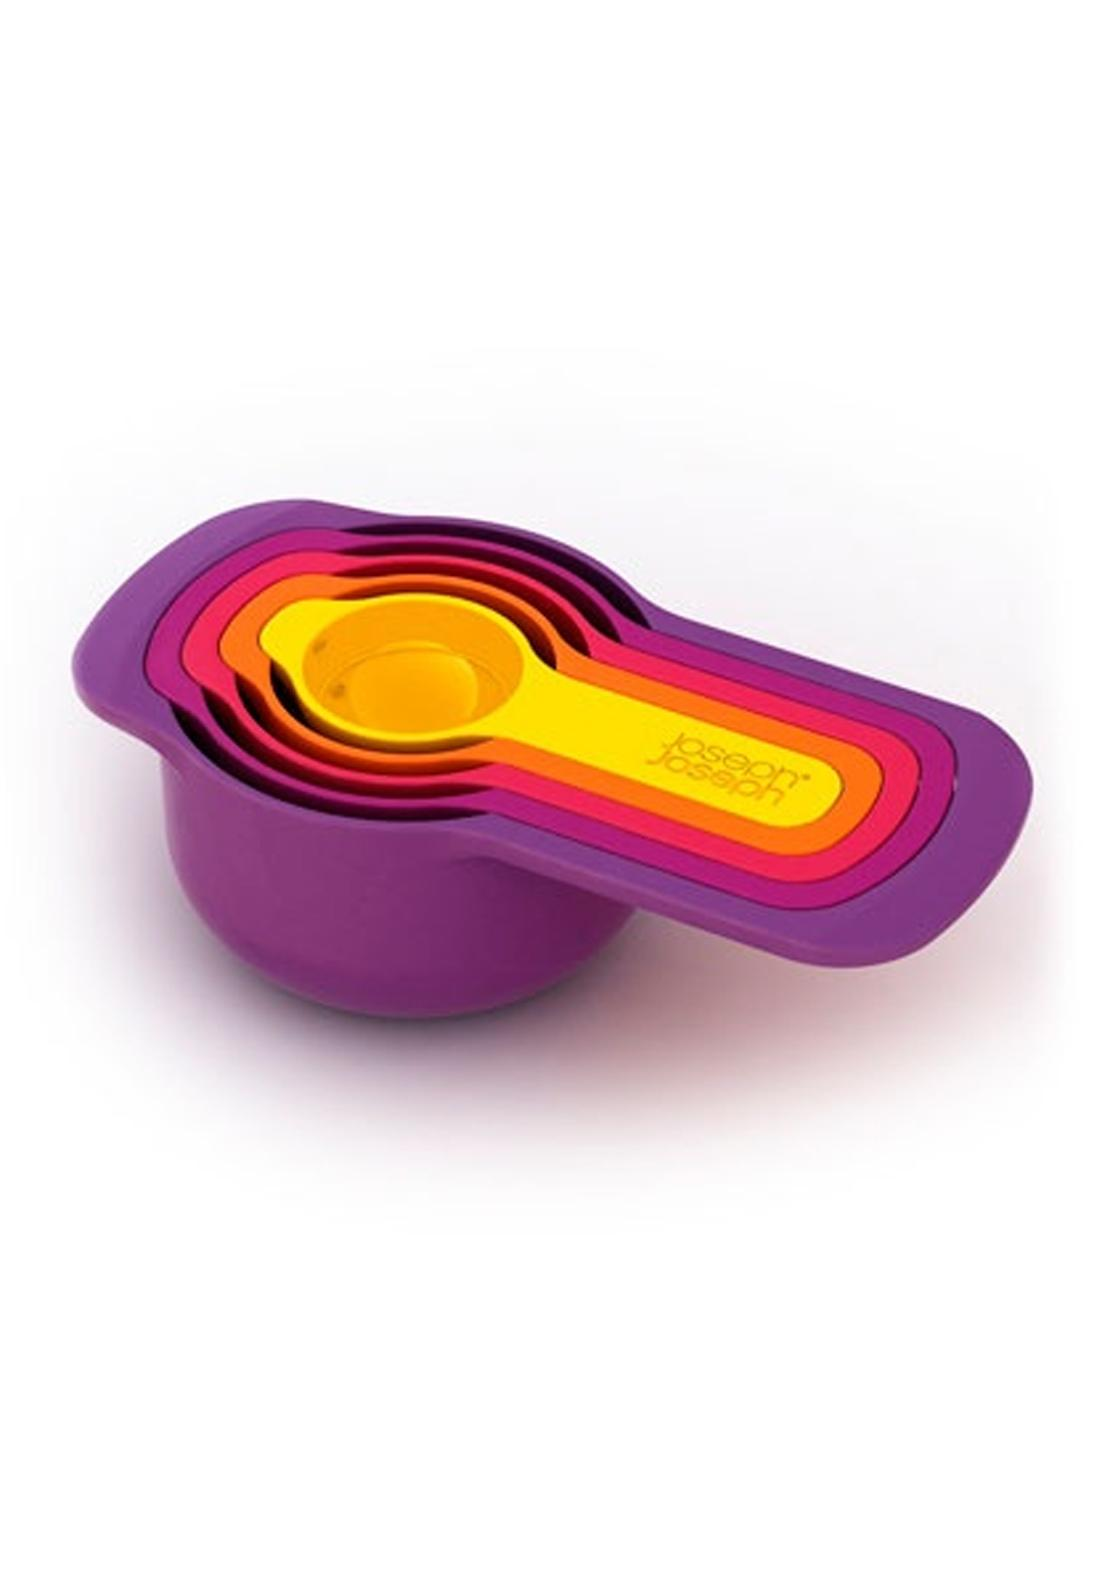 Joseph Joseph Nest Plus Measuring Cups (Set of 5) Multi-Colour